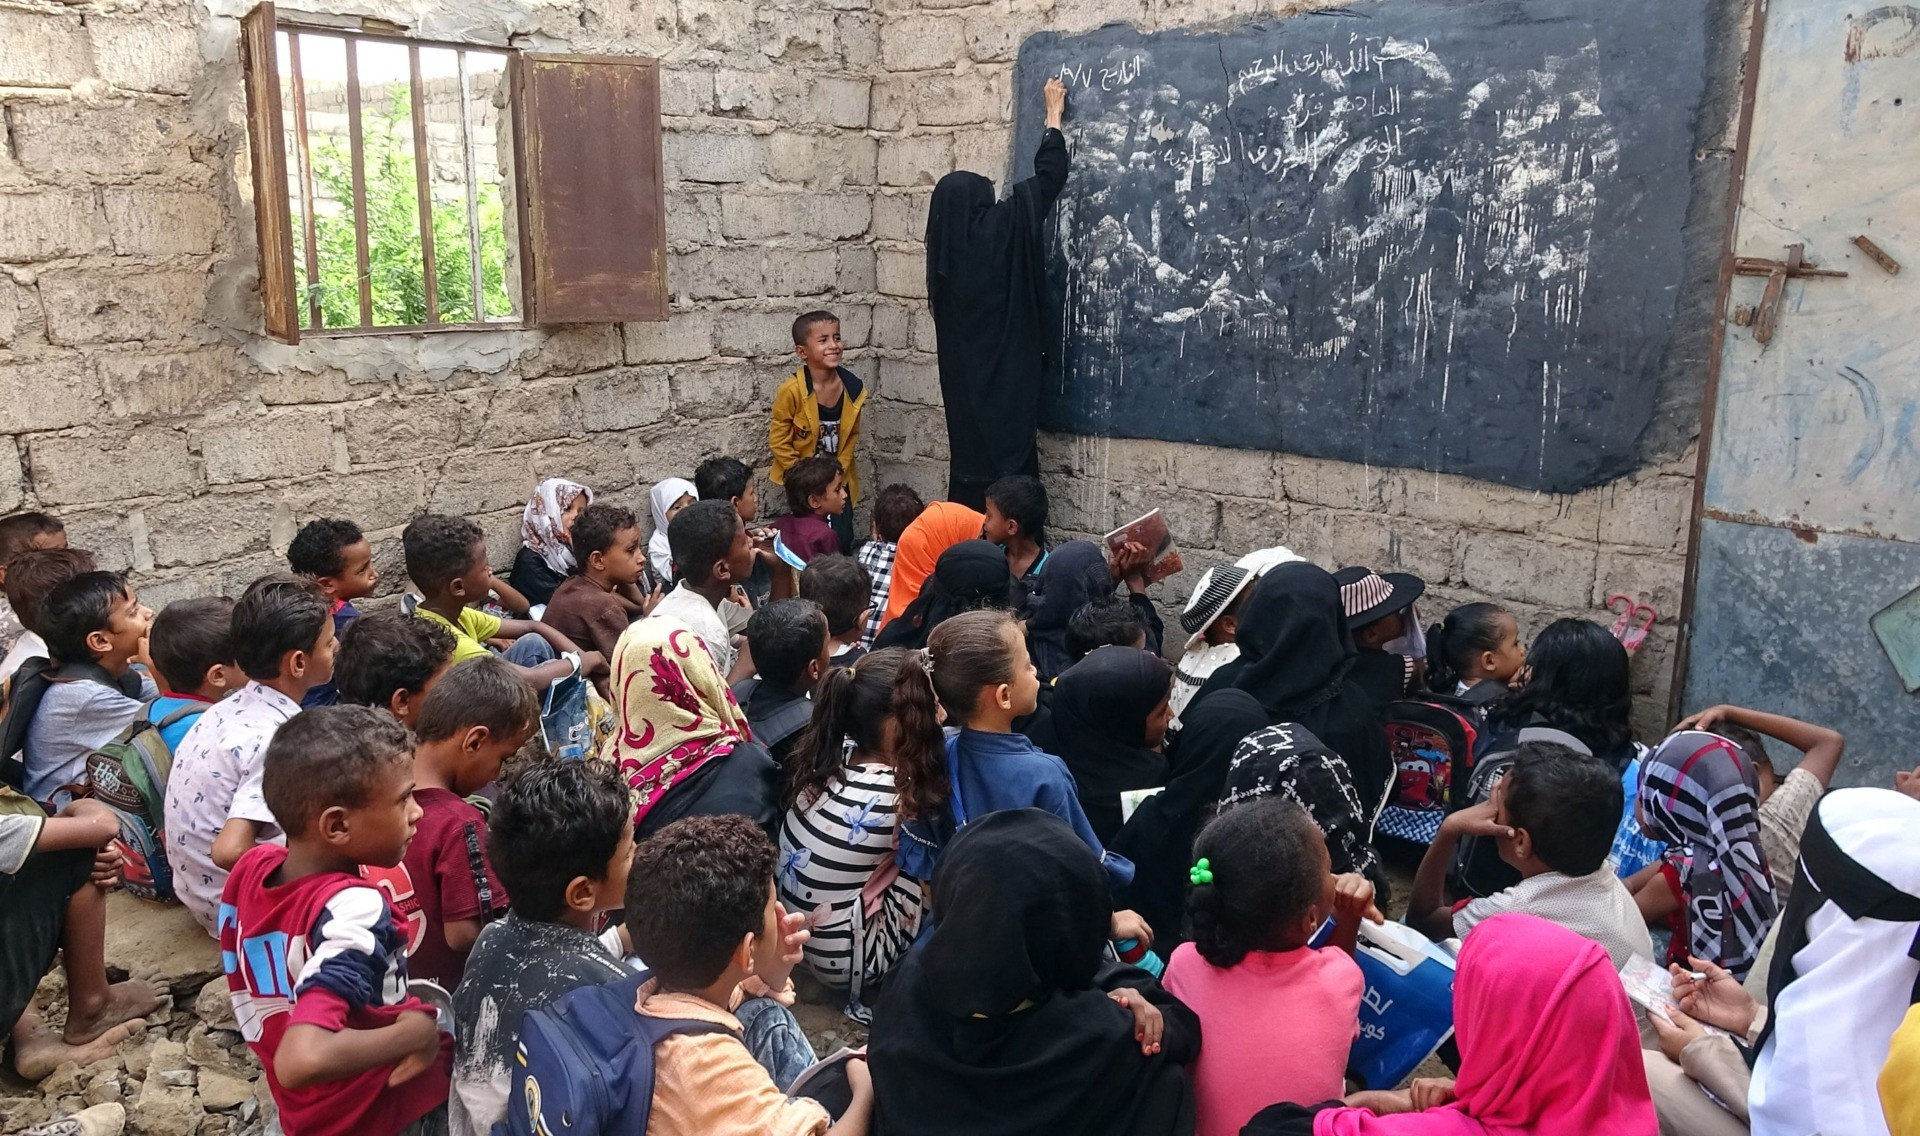 Displaced Yemeni children attend class in a dilapidated school building, in the war-torn western province of Hodeidah, on September 5, 2021. - Many schools in Yemen have been destroyed in the conflict between the government and the Huthi rebels or turned into refugee camps or military facilities. About two million children were without school even before the virus hit, according to the United Nations, which has warned the number will likely rise. (Photo by Khaled Ziad / AFP) (Photo by KHALED ZIAD/AFP via Getty Images)